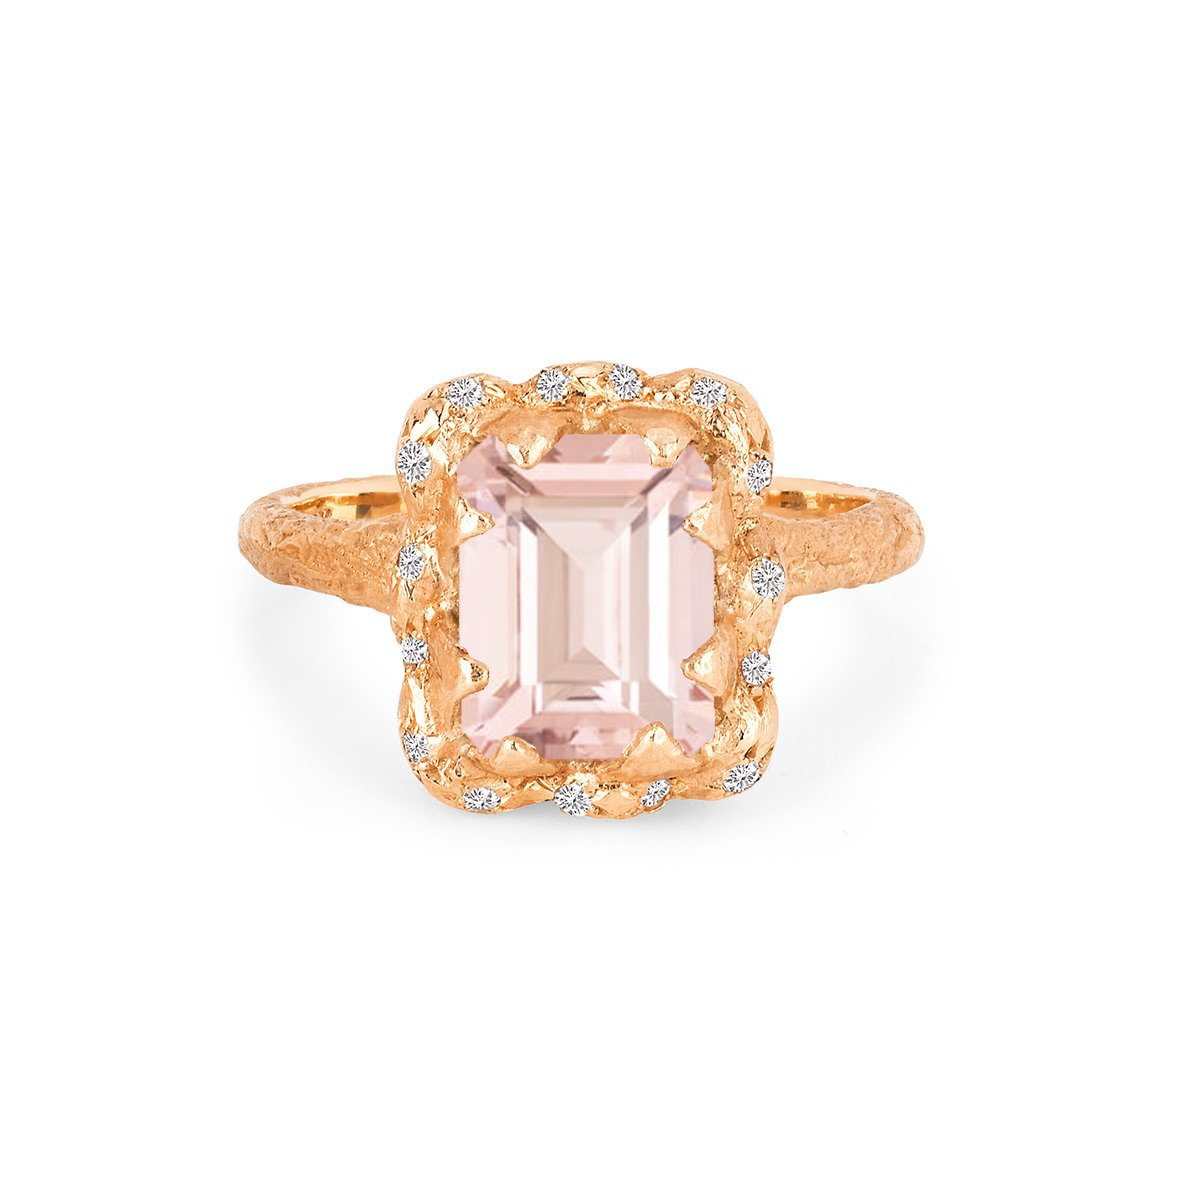 18k Queen Emerald Cut Morganite Ring with Sprinkled Diamonds